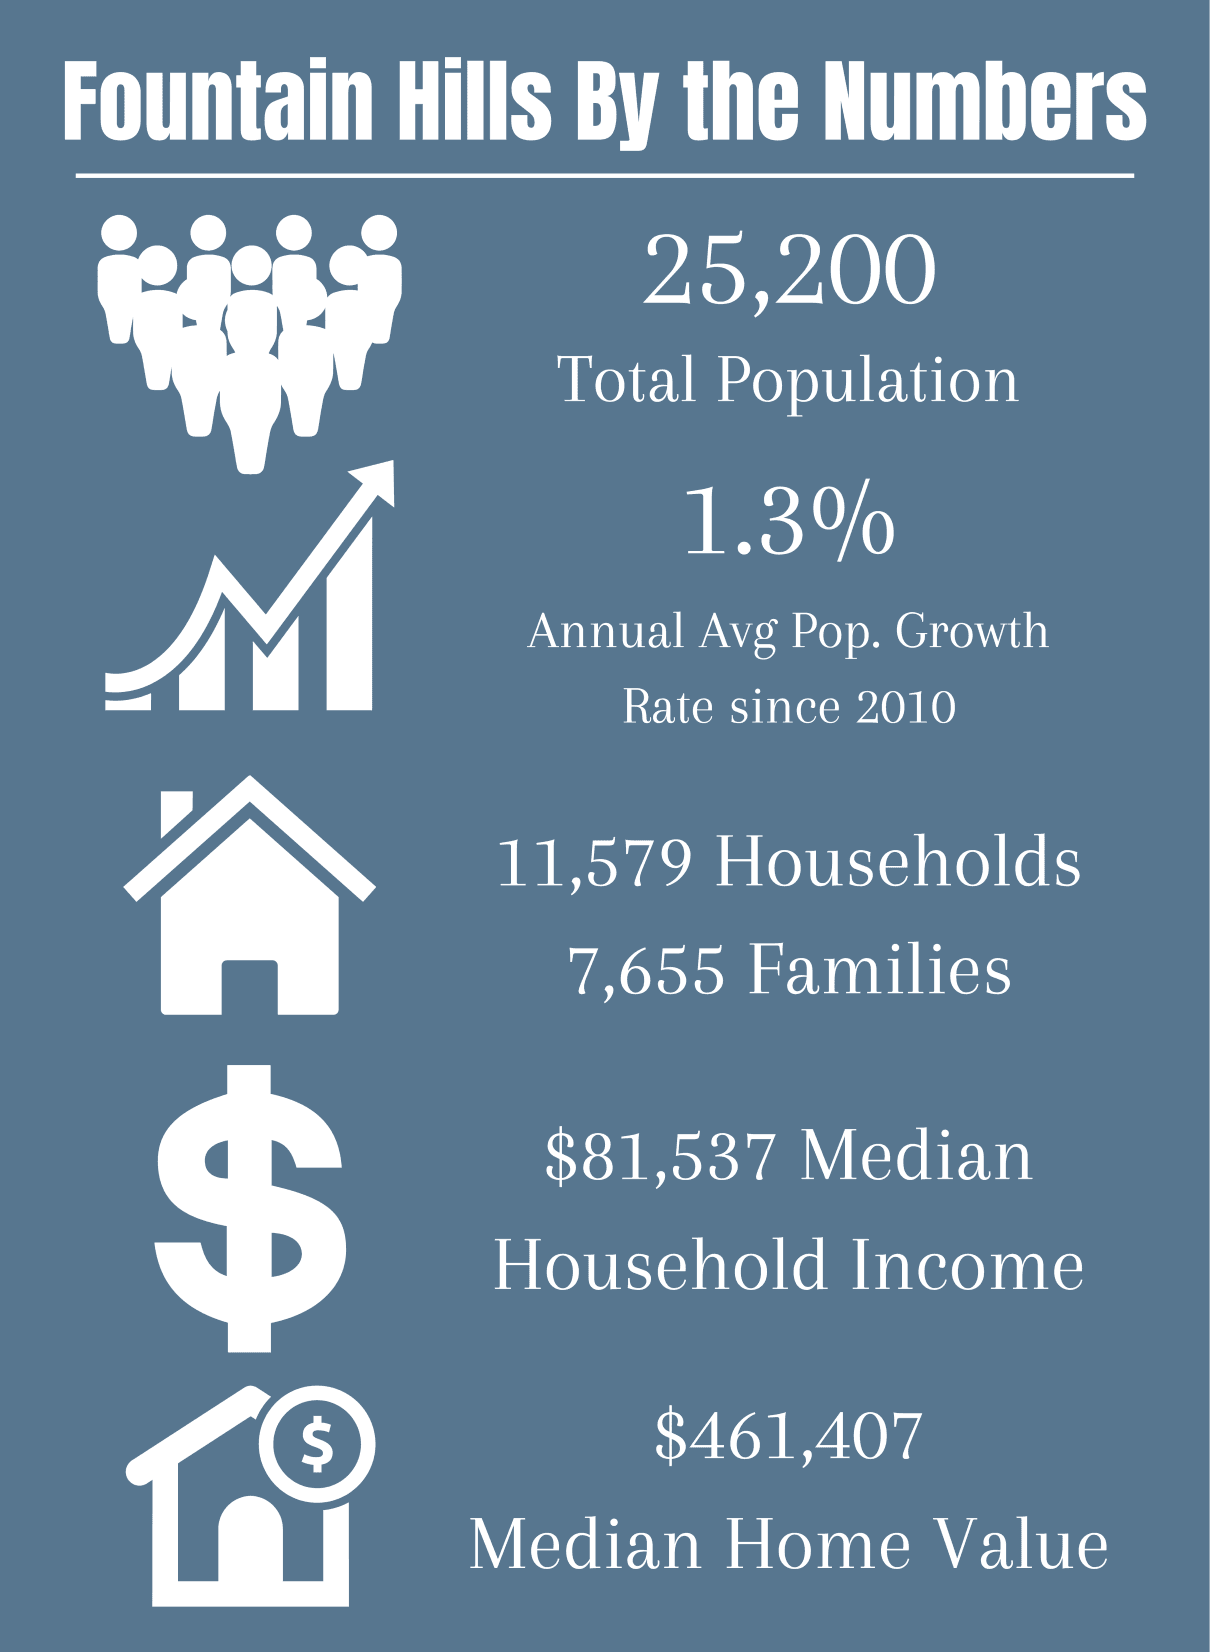 Fountain Hills by the numbers